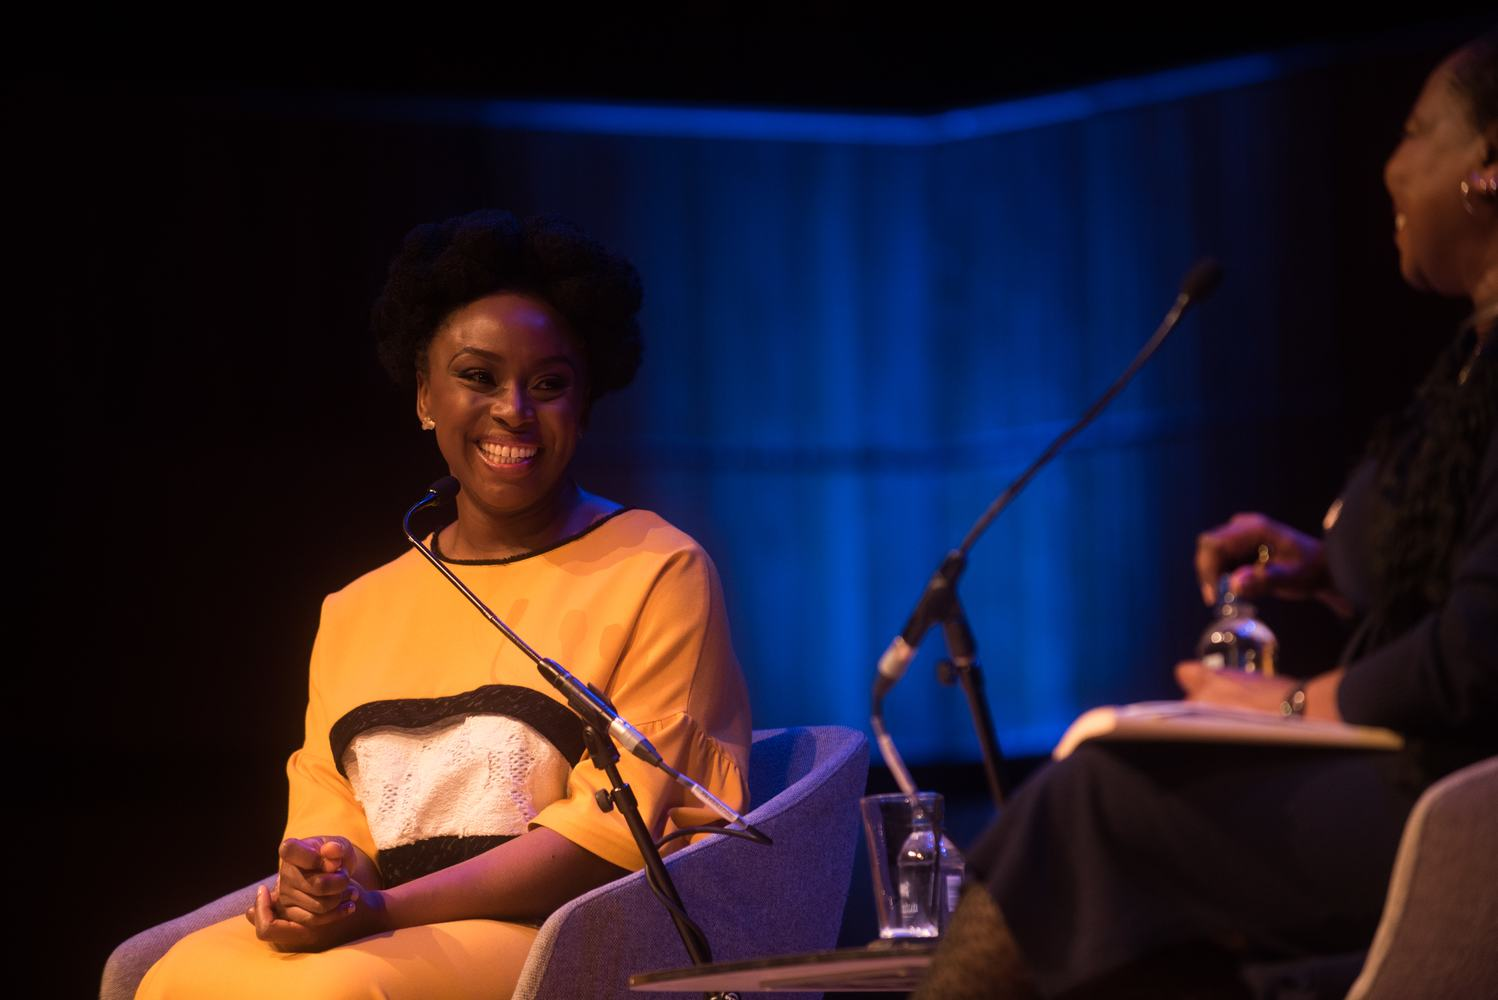 Chimamanda Ngozi Adichie and Reni Eddo-Lodge in conversation